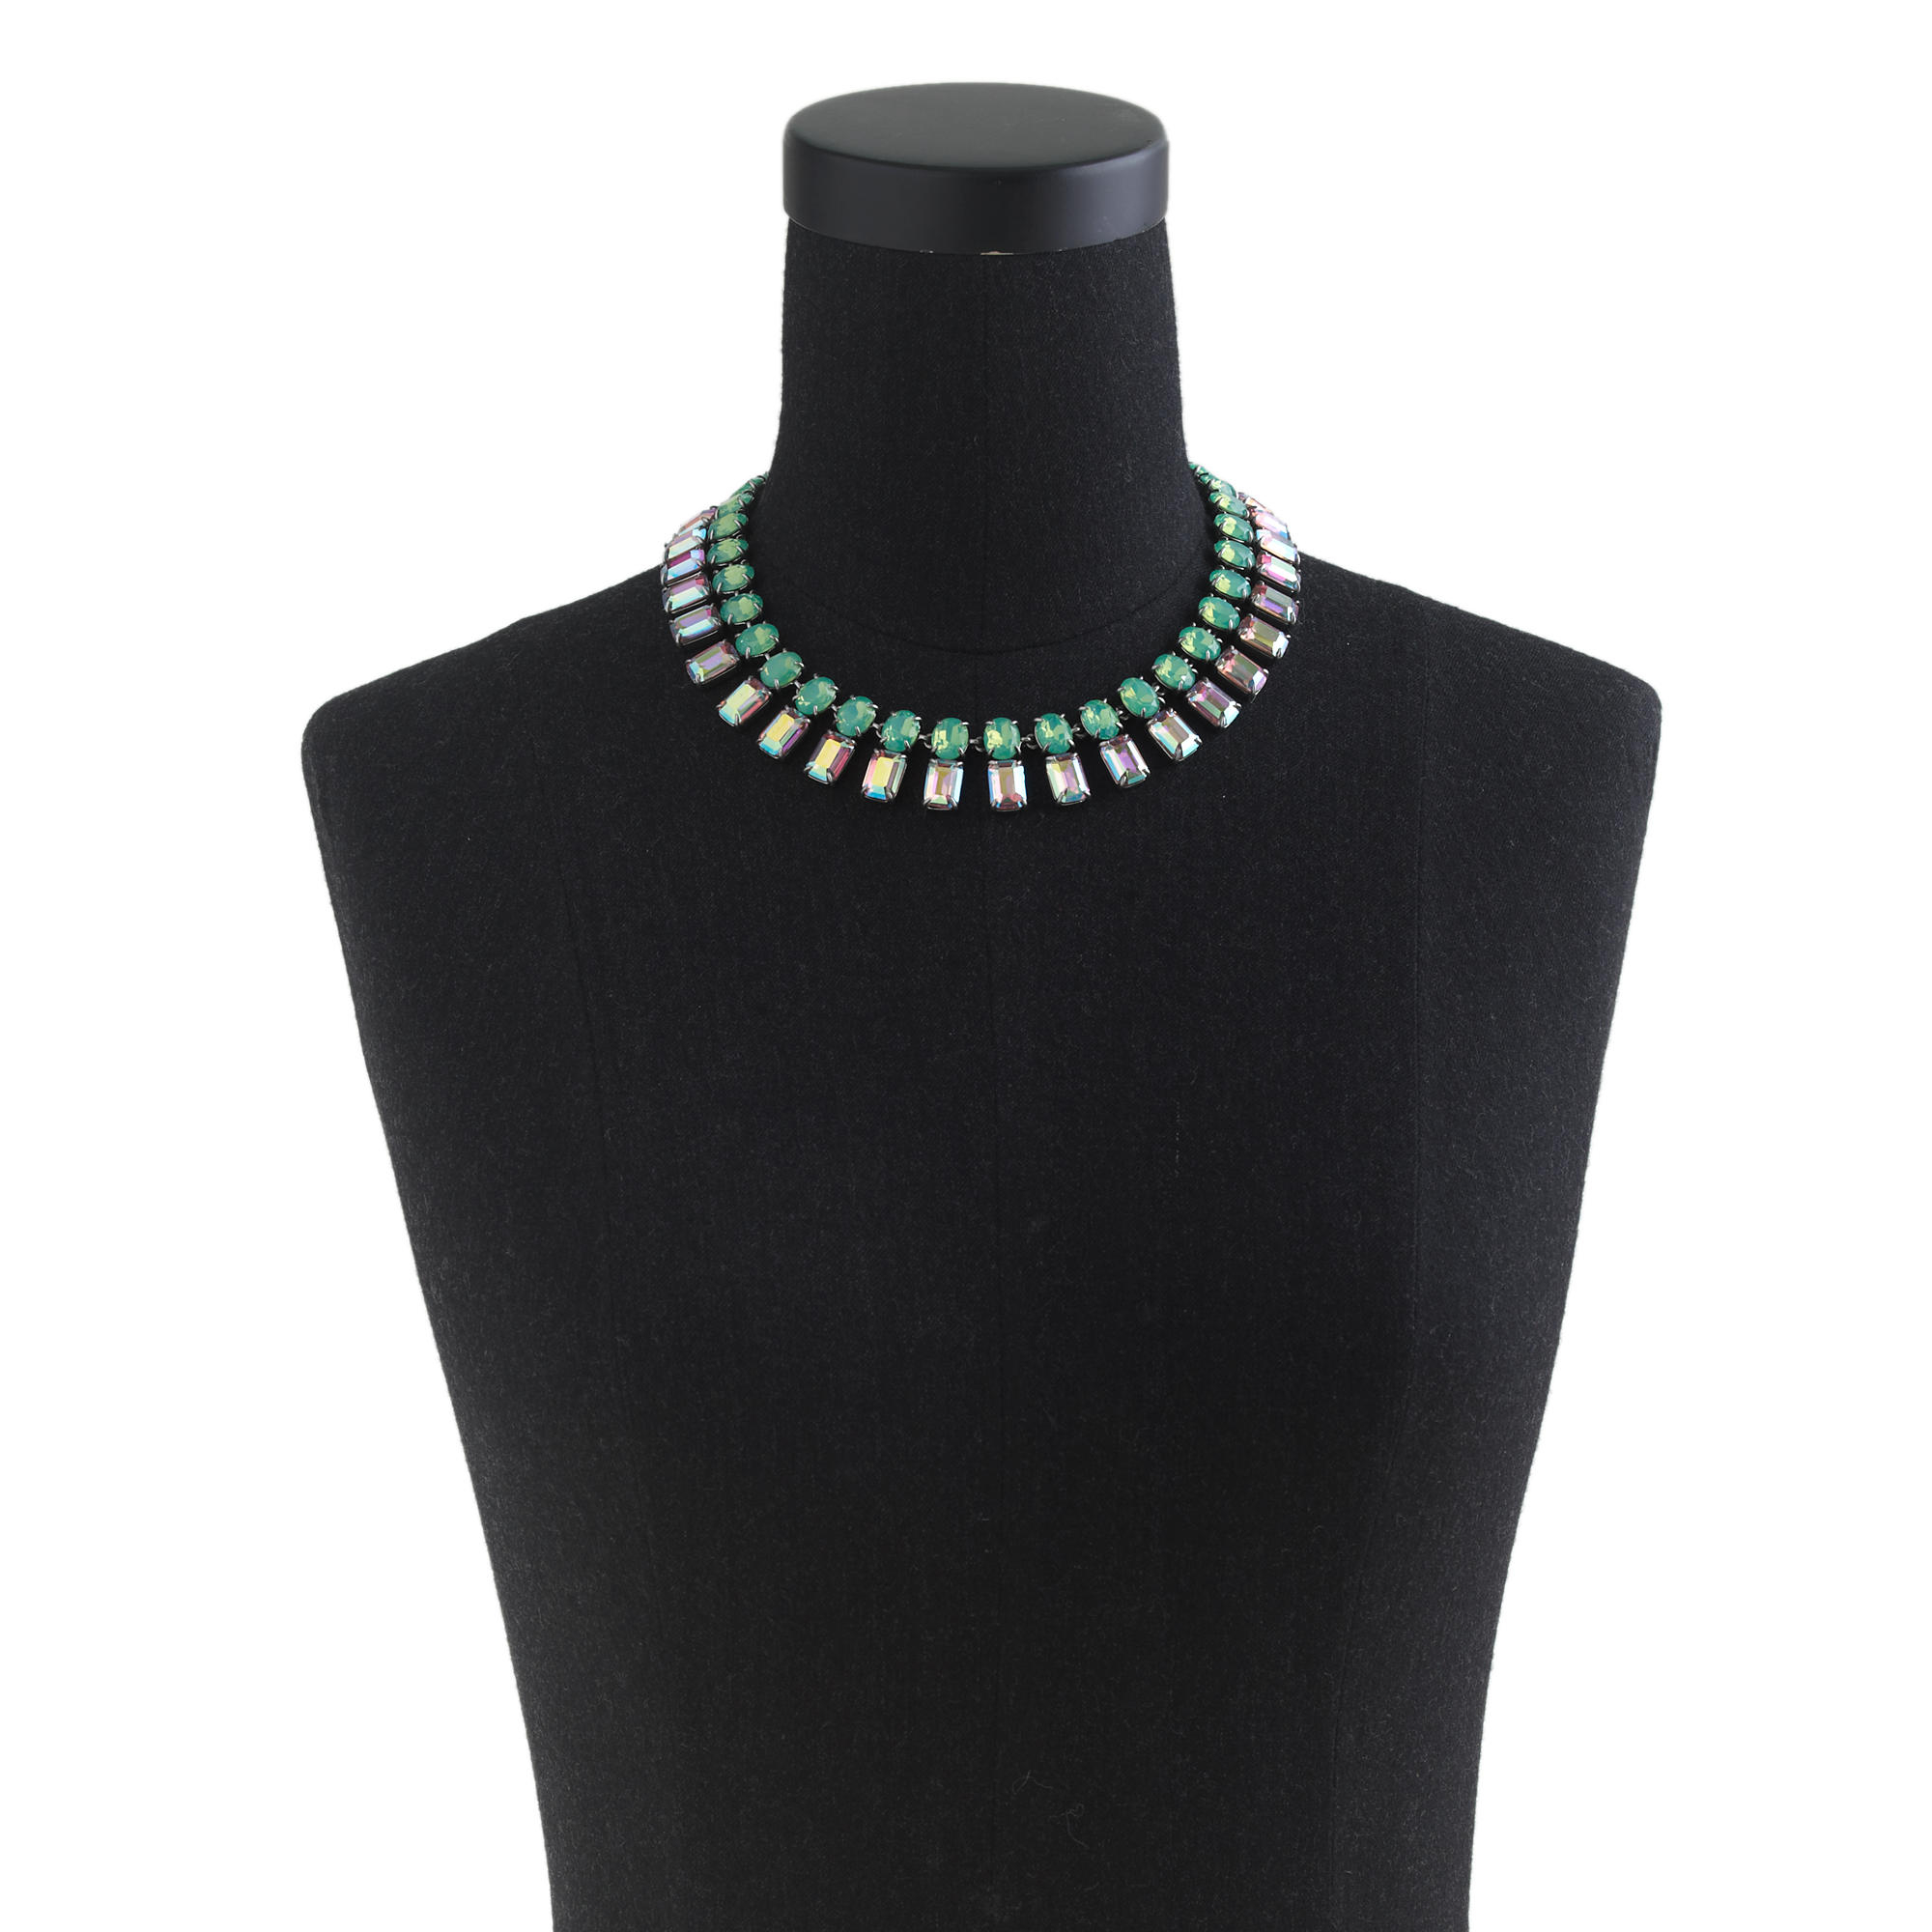 J.Crew Iridescent Bar Necklace in Green